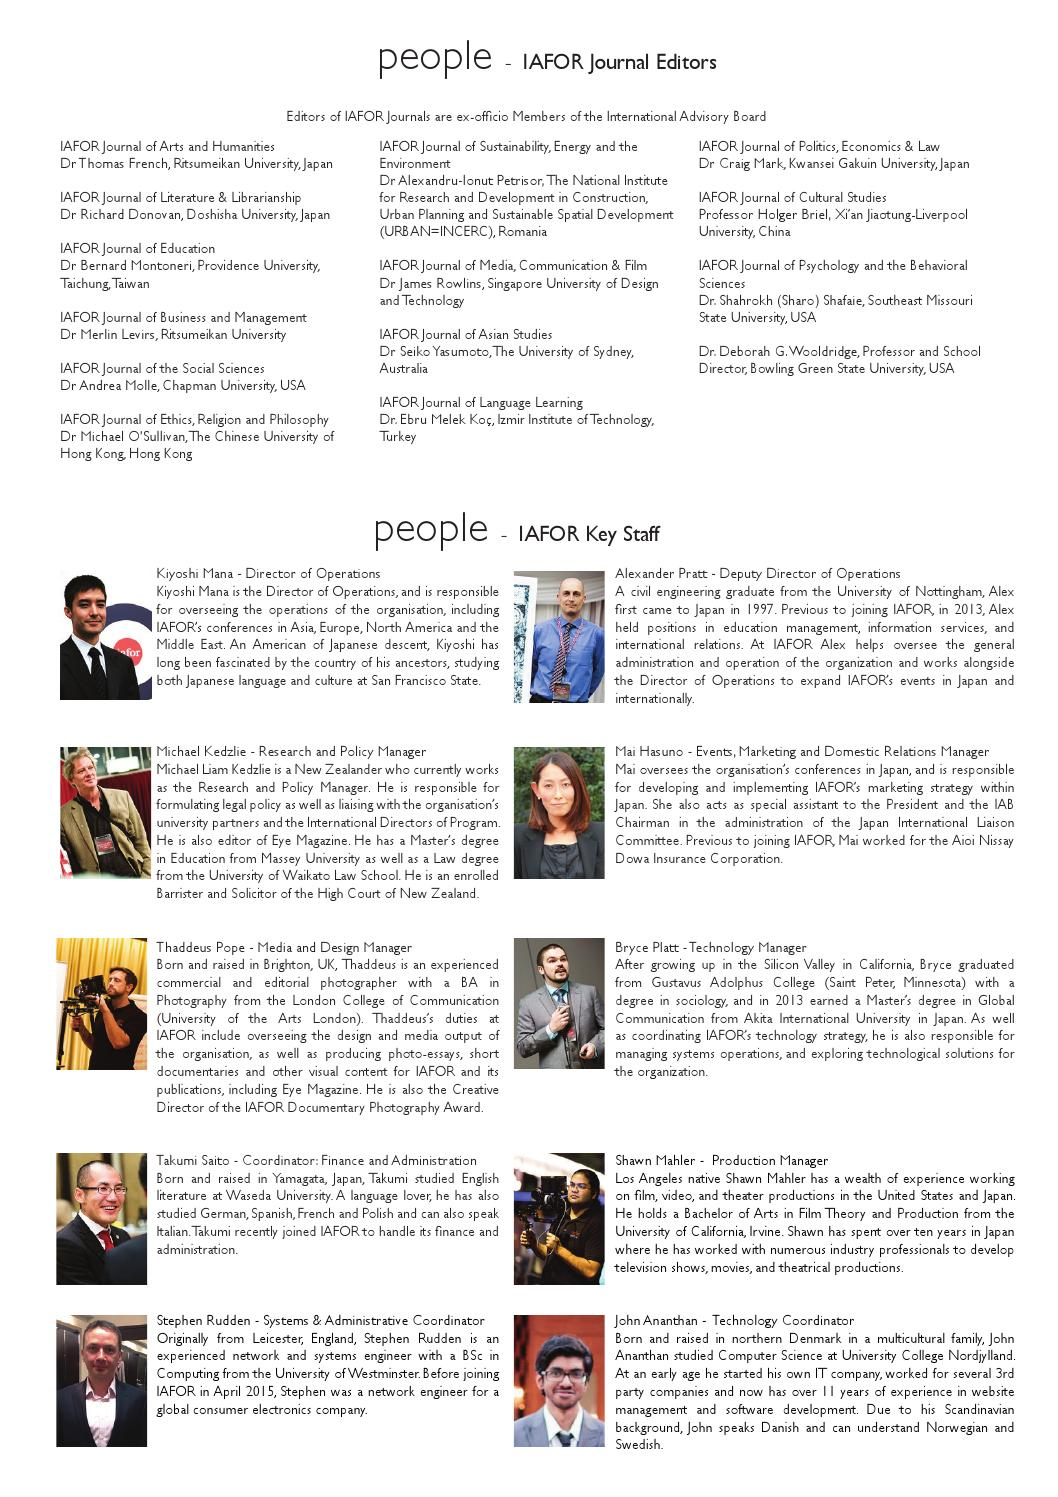 ACSS ACSEE 2015 Official Conference Programme by IAFOR - issuu